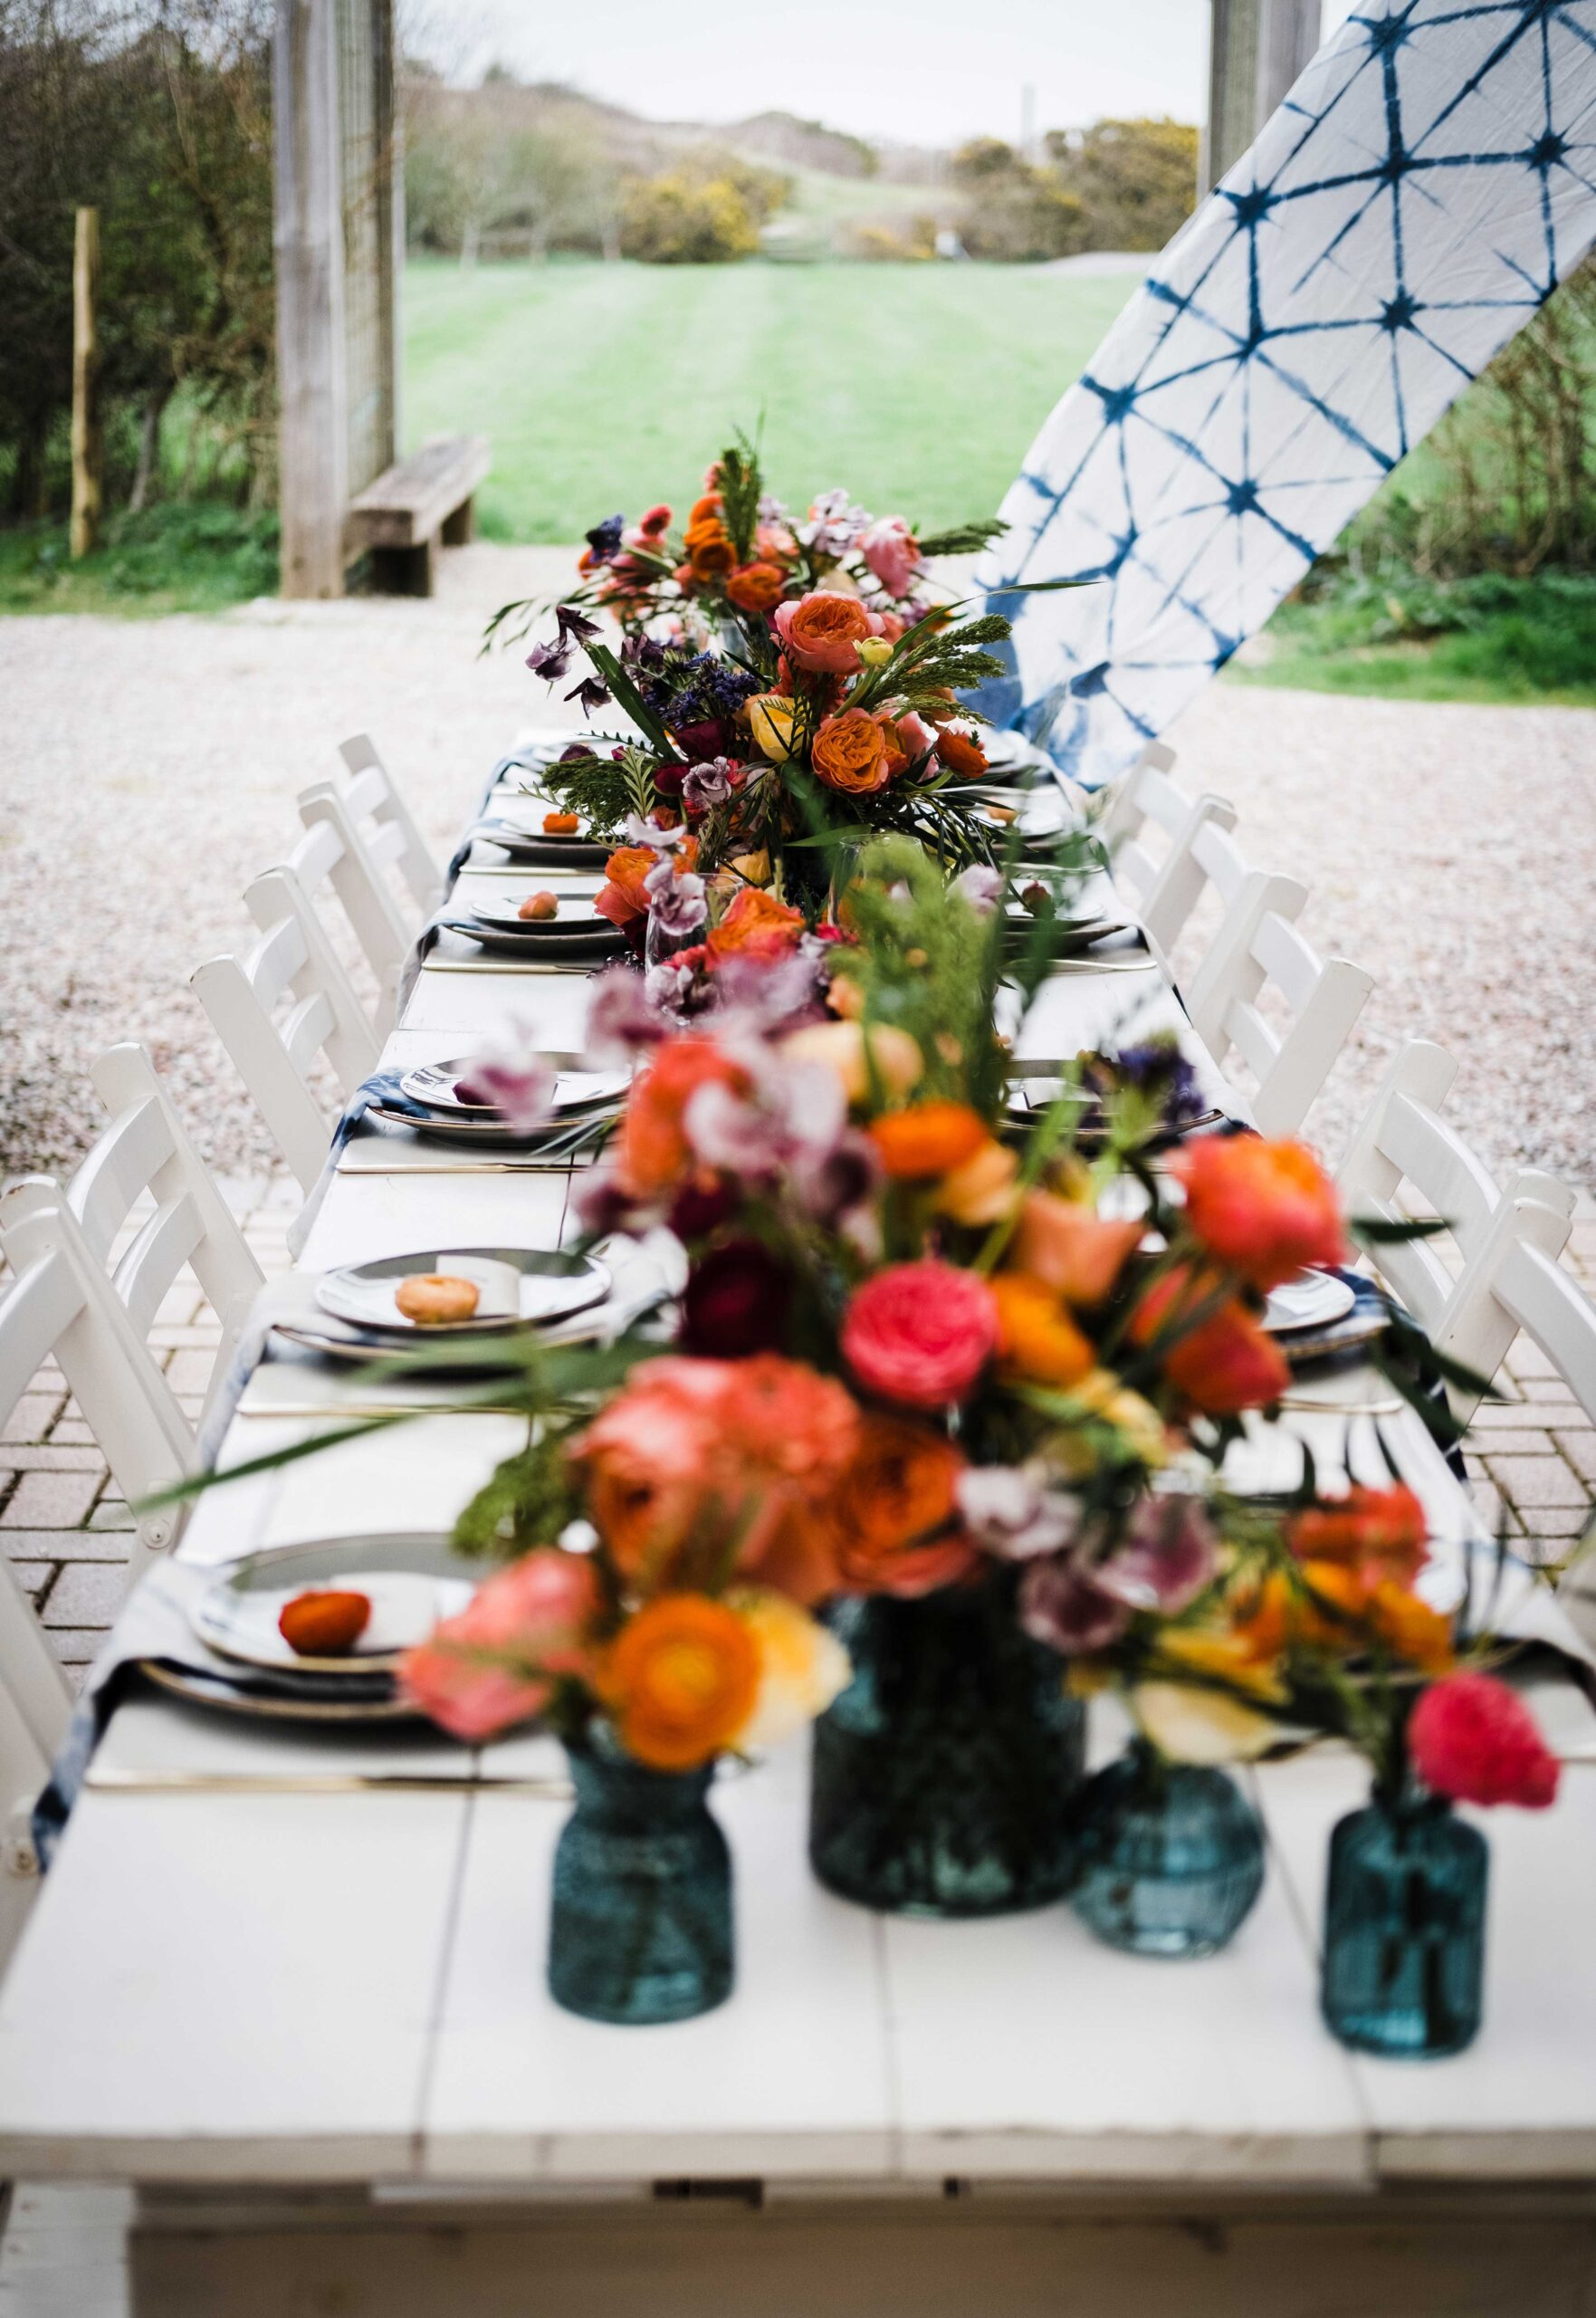 Outdoor wedding table setup